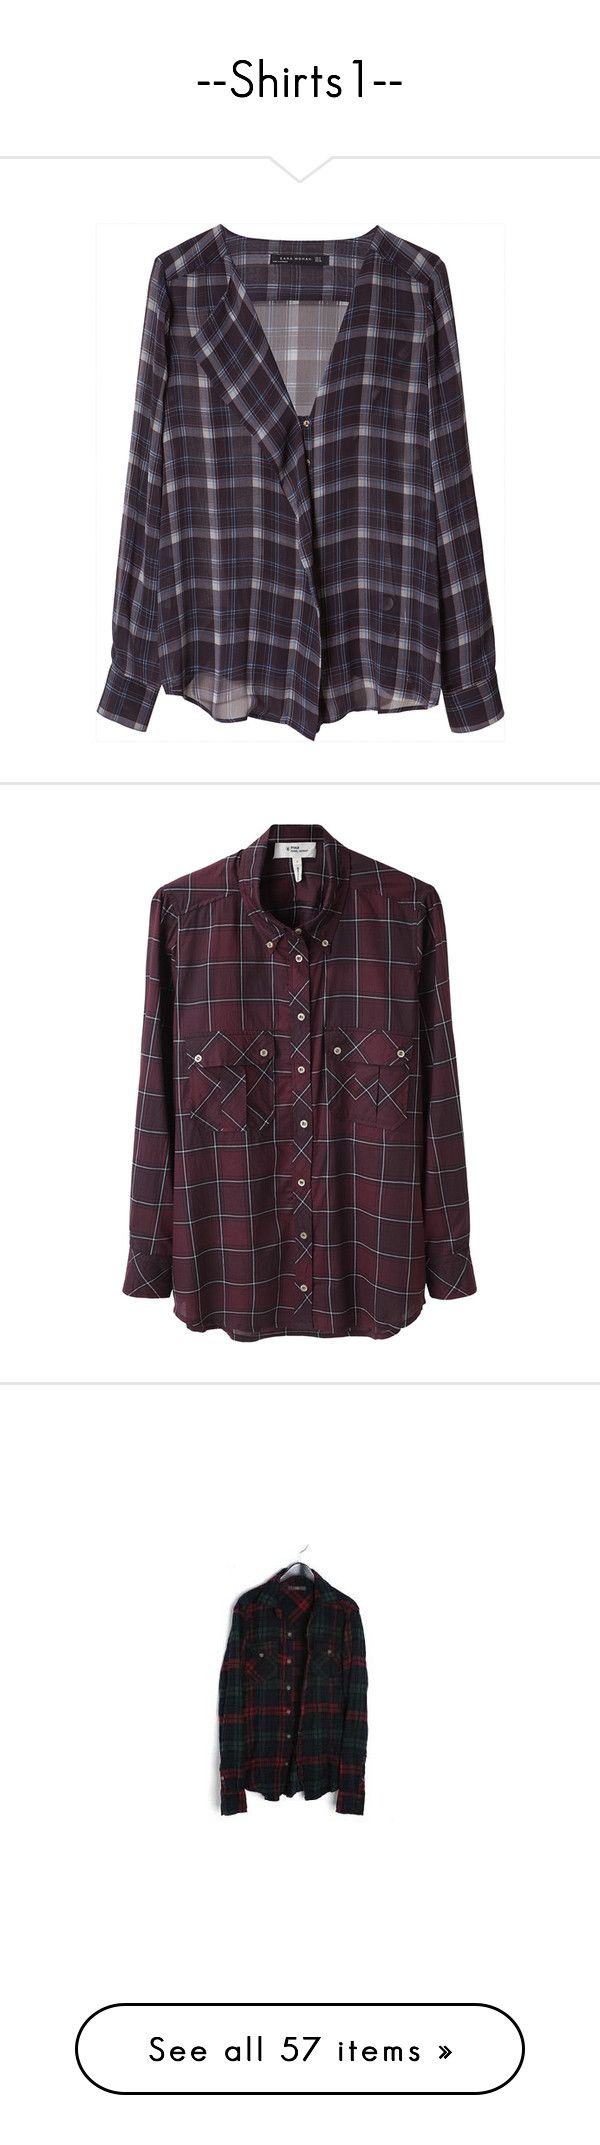 """""""--Shirts1--"""" by centurythe ❤ liked on Polyvore featuring tops, blouses, shirts, flannels, navy blue, navy blue checkered shirt, navy blue blouse, navy blue shirt, purple shirt and purple checked shirt"""